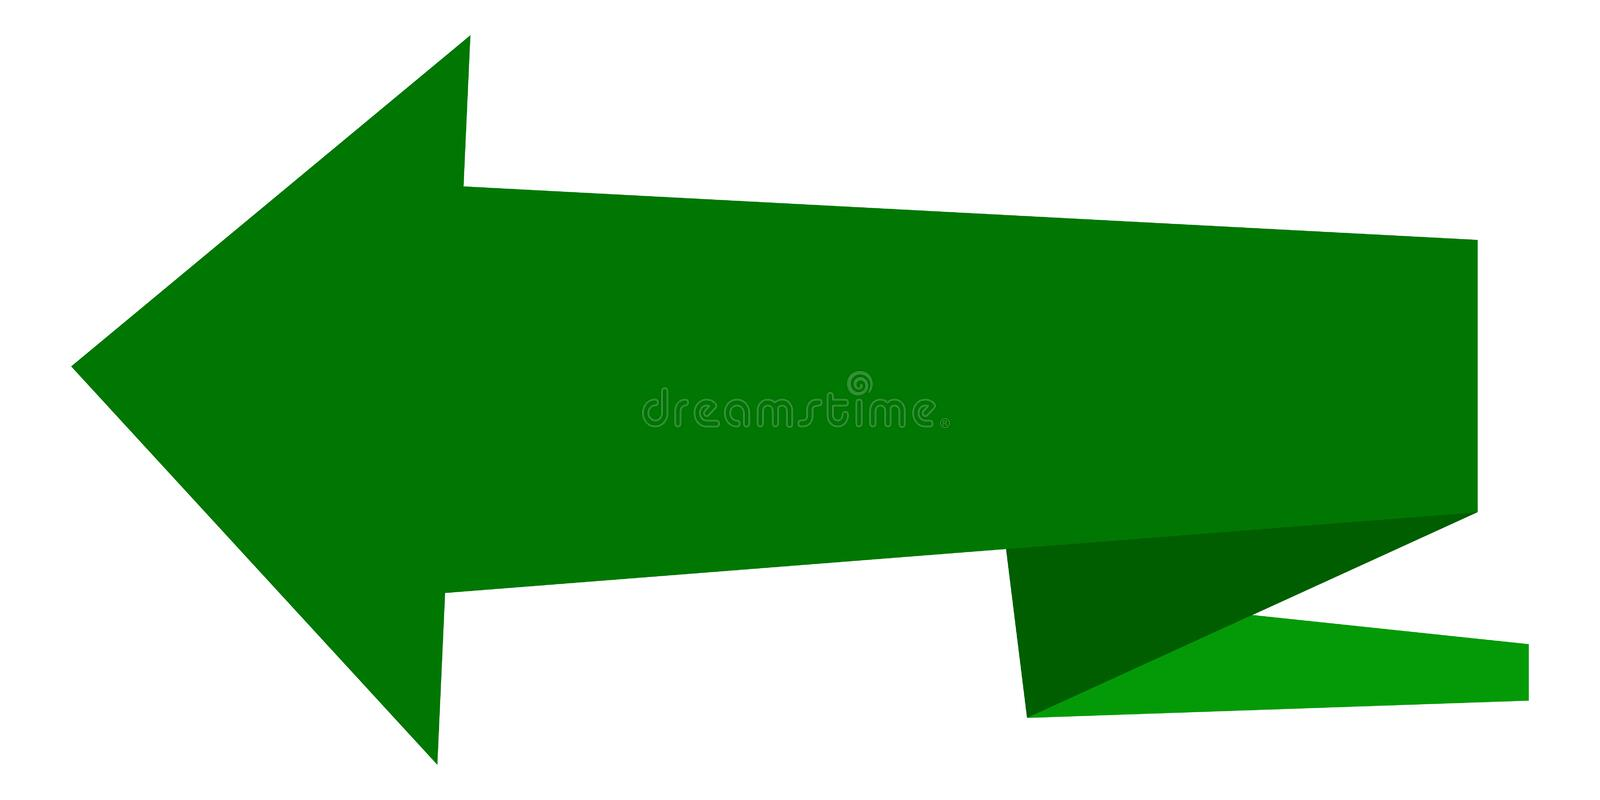 Arrow green, download marker pointer, vector sign forward, orientation symbol banner, interface button royalty free illustration